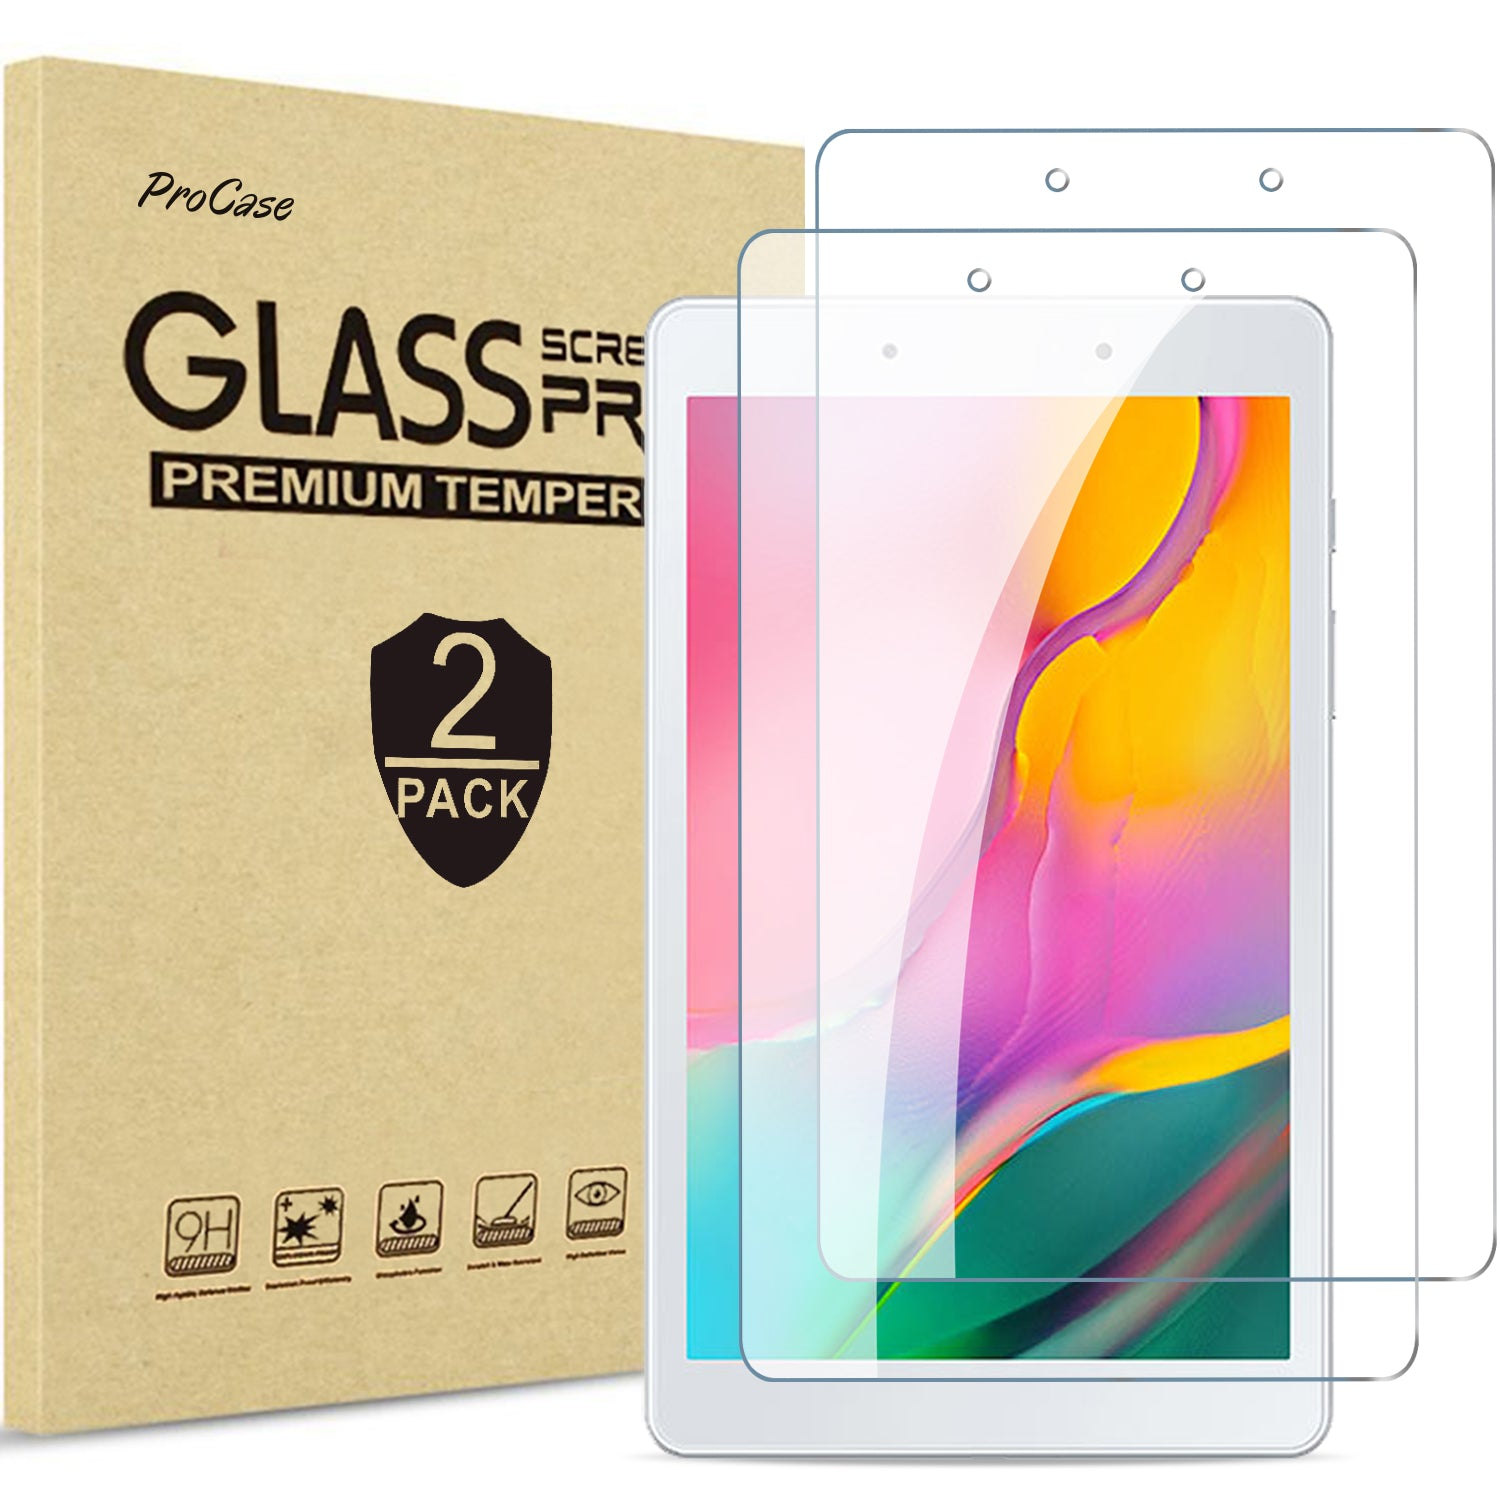 [2 Pack] Galaxy Tab A 8.0 2019 Screen Protector T290 | ProCase